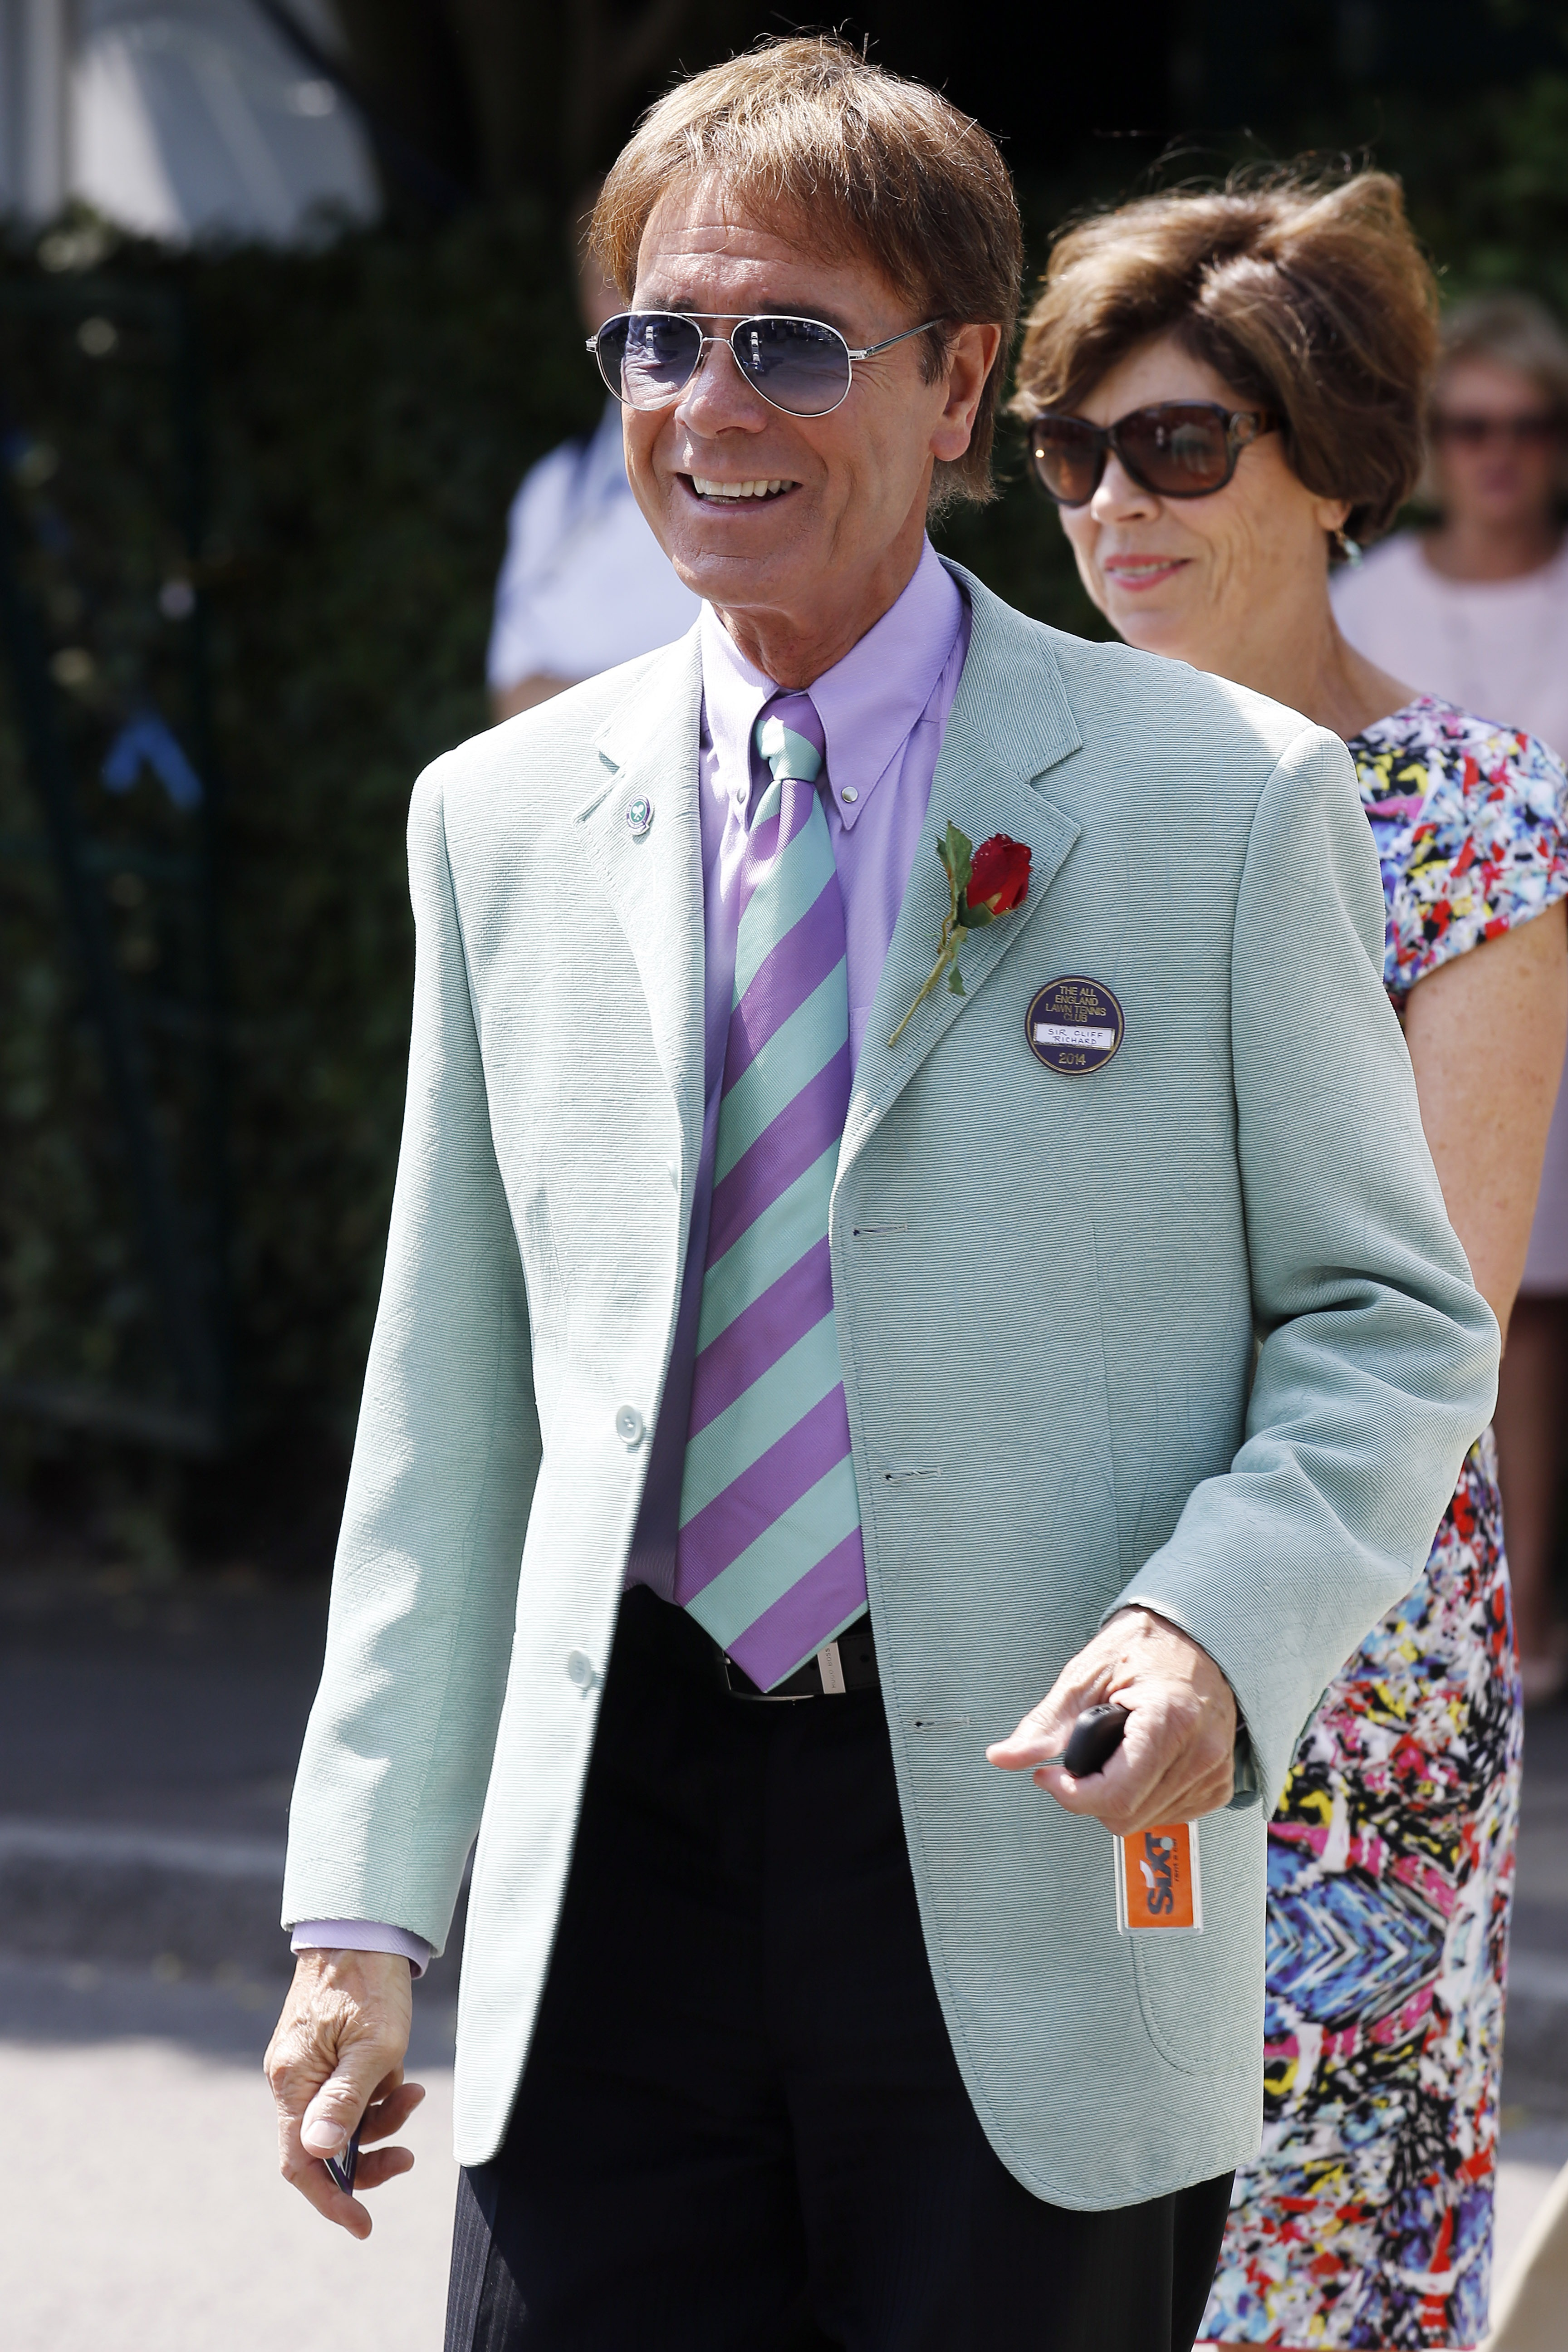 Sir Cliff Richard seen arriving at Wimbledon on July 04, 2014 in London.